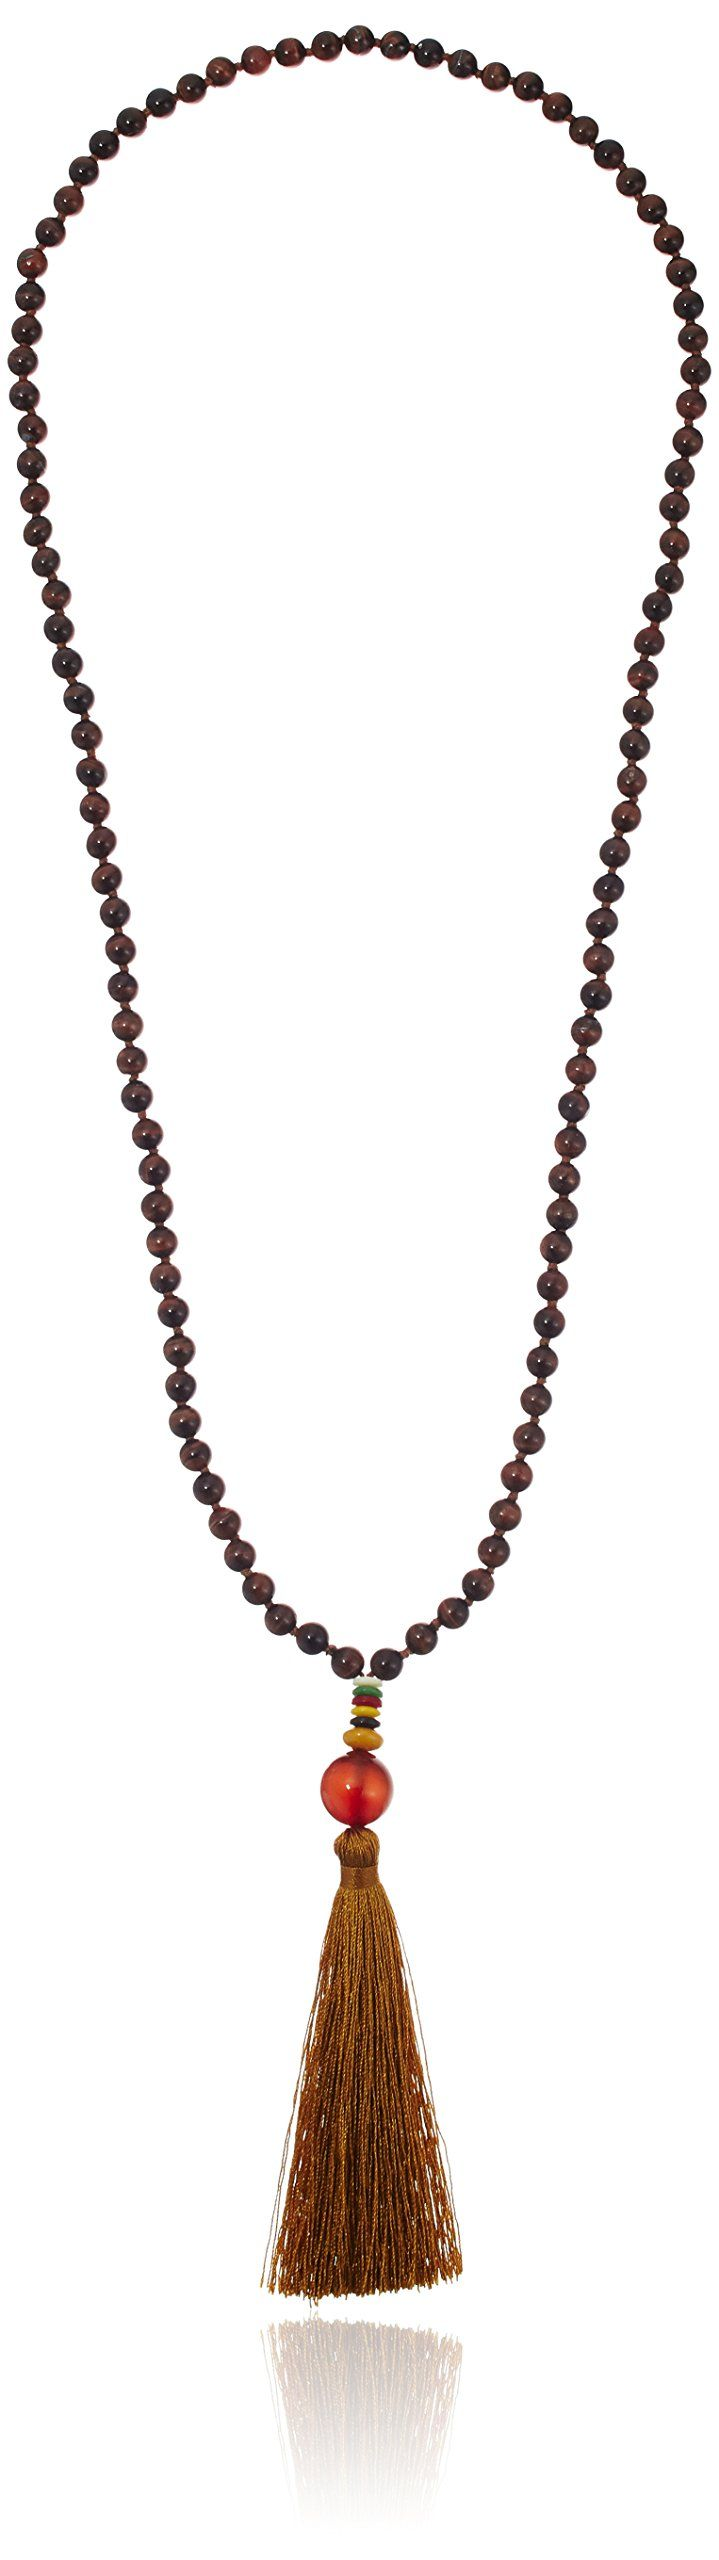 """Red Agate Bead with Dyed Marble Rondelles and Golden Tassel on Red Tiger's Eye Bead Strand Necklace, 30"""". Domestic."""